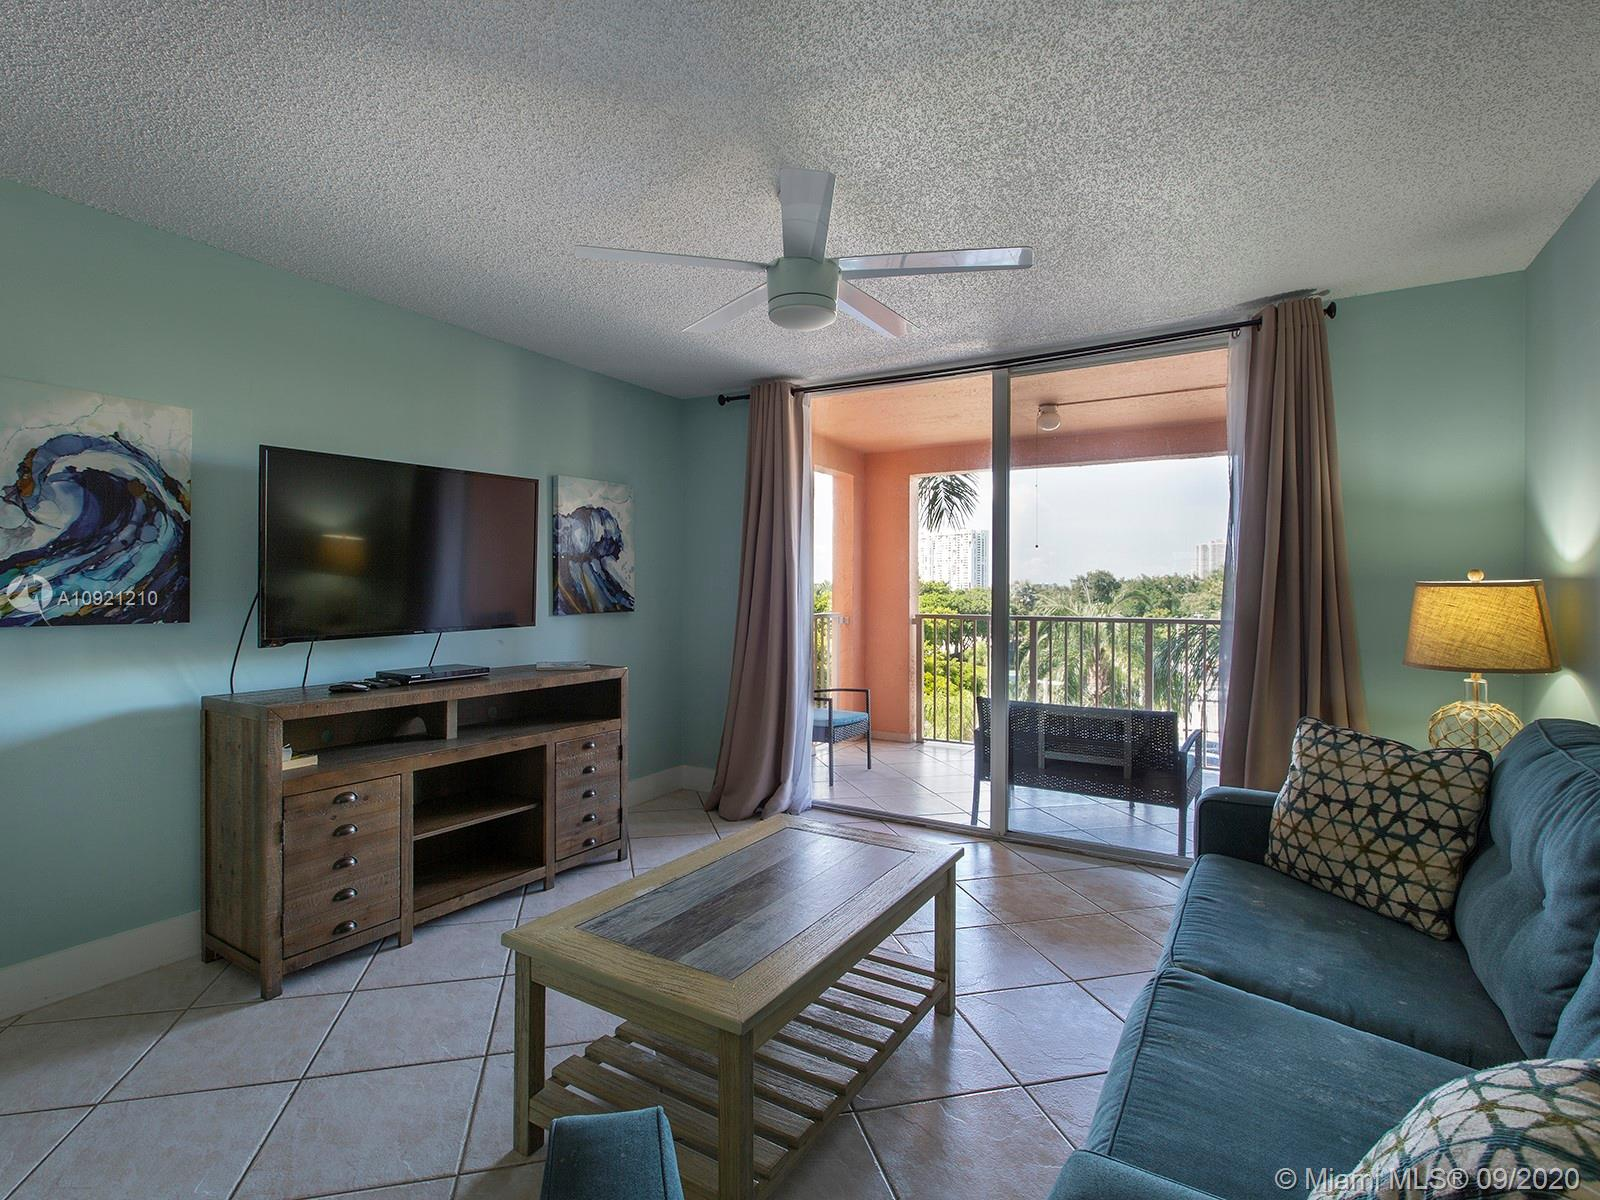 Yacht Club 1 at Aventura #9503 - 19501 E Country Club Dr #9503, Aventura, FL 33180